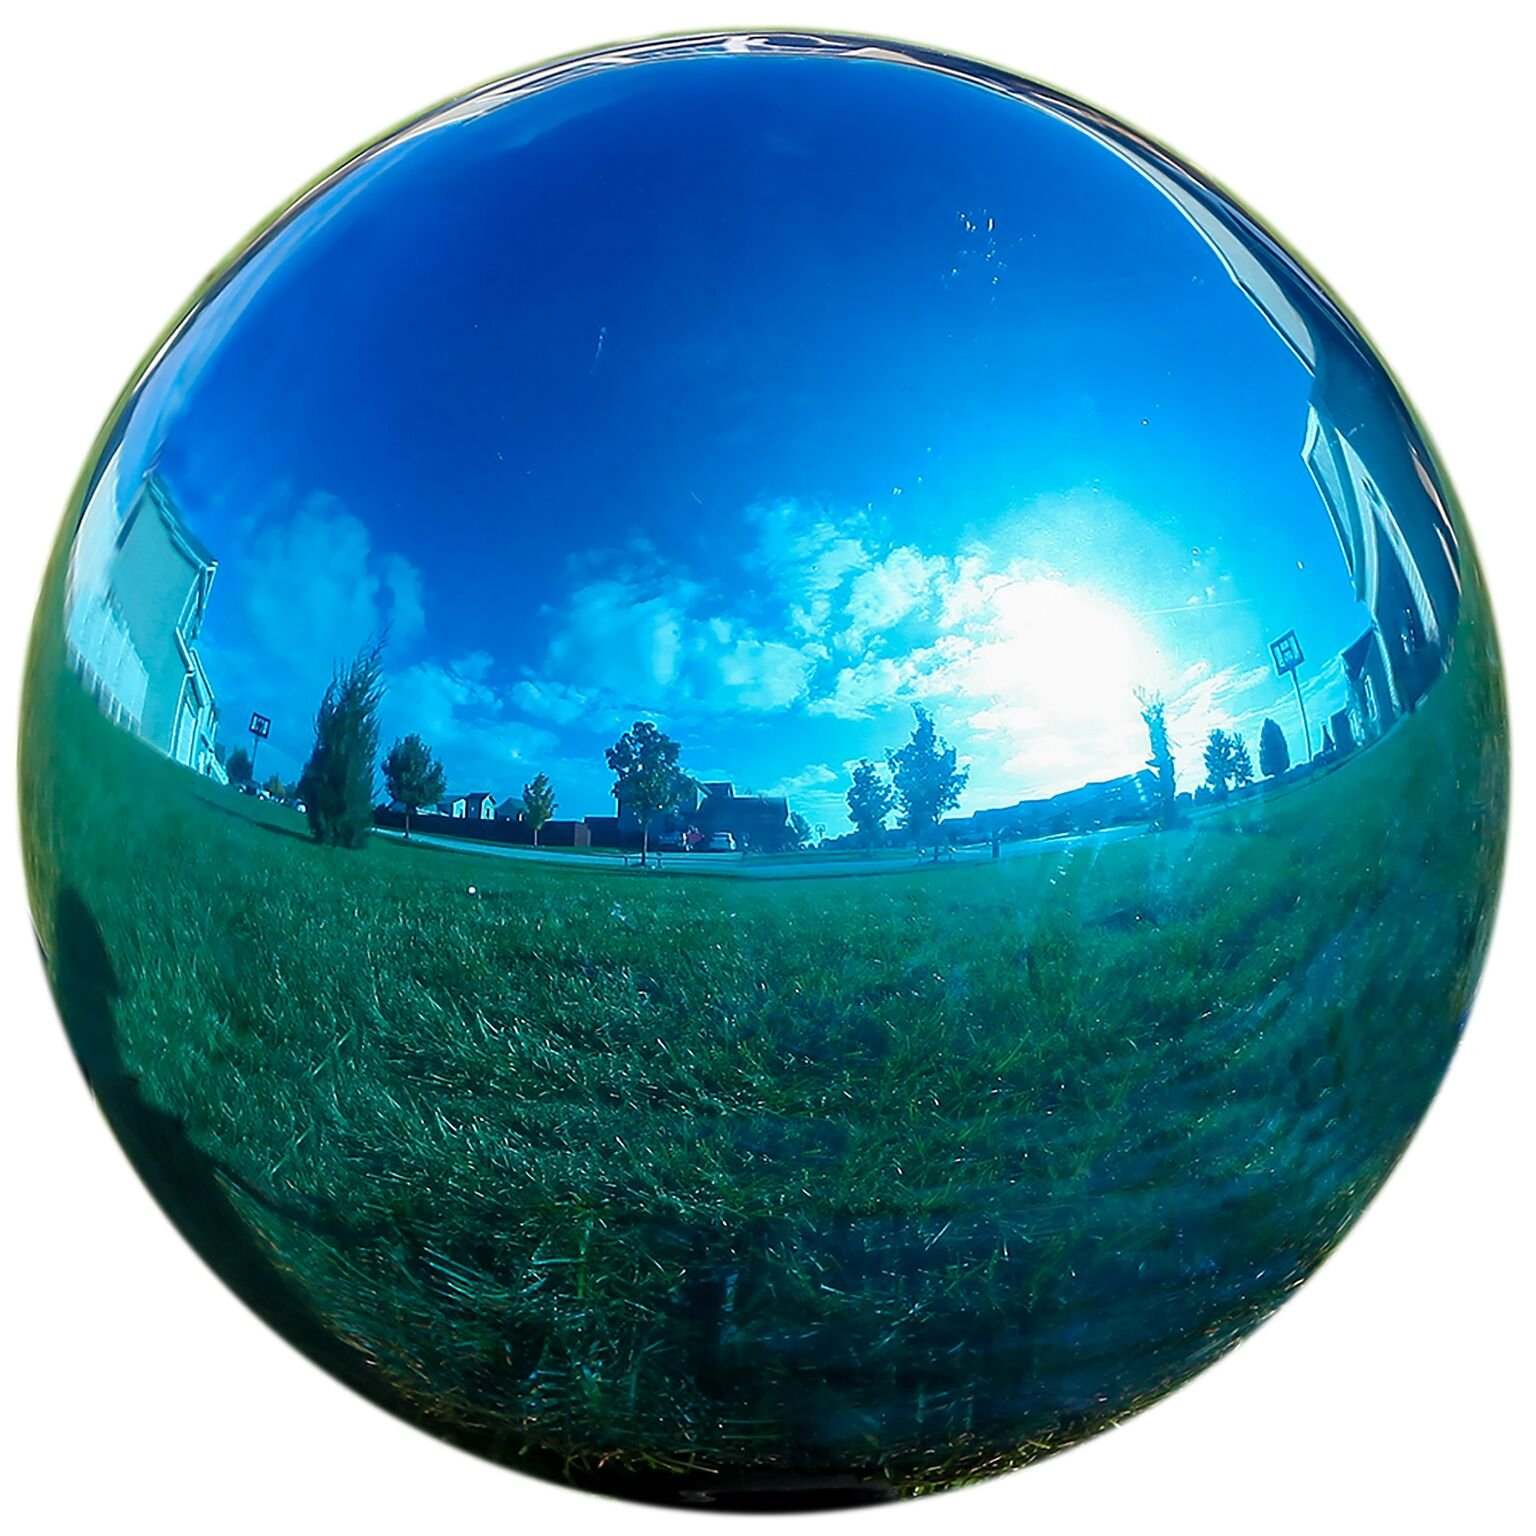 Lily's Home Glass Gazing Mirror Ball, Colorful and Shiny Addition to Any Garden or Home, Ideal As a Housewarming Gift, Sparkling Blue (12 Inches Diameter)